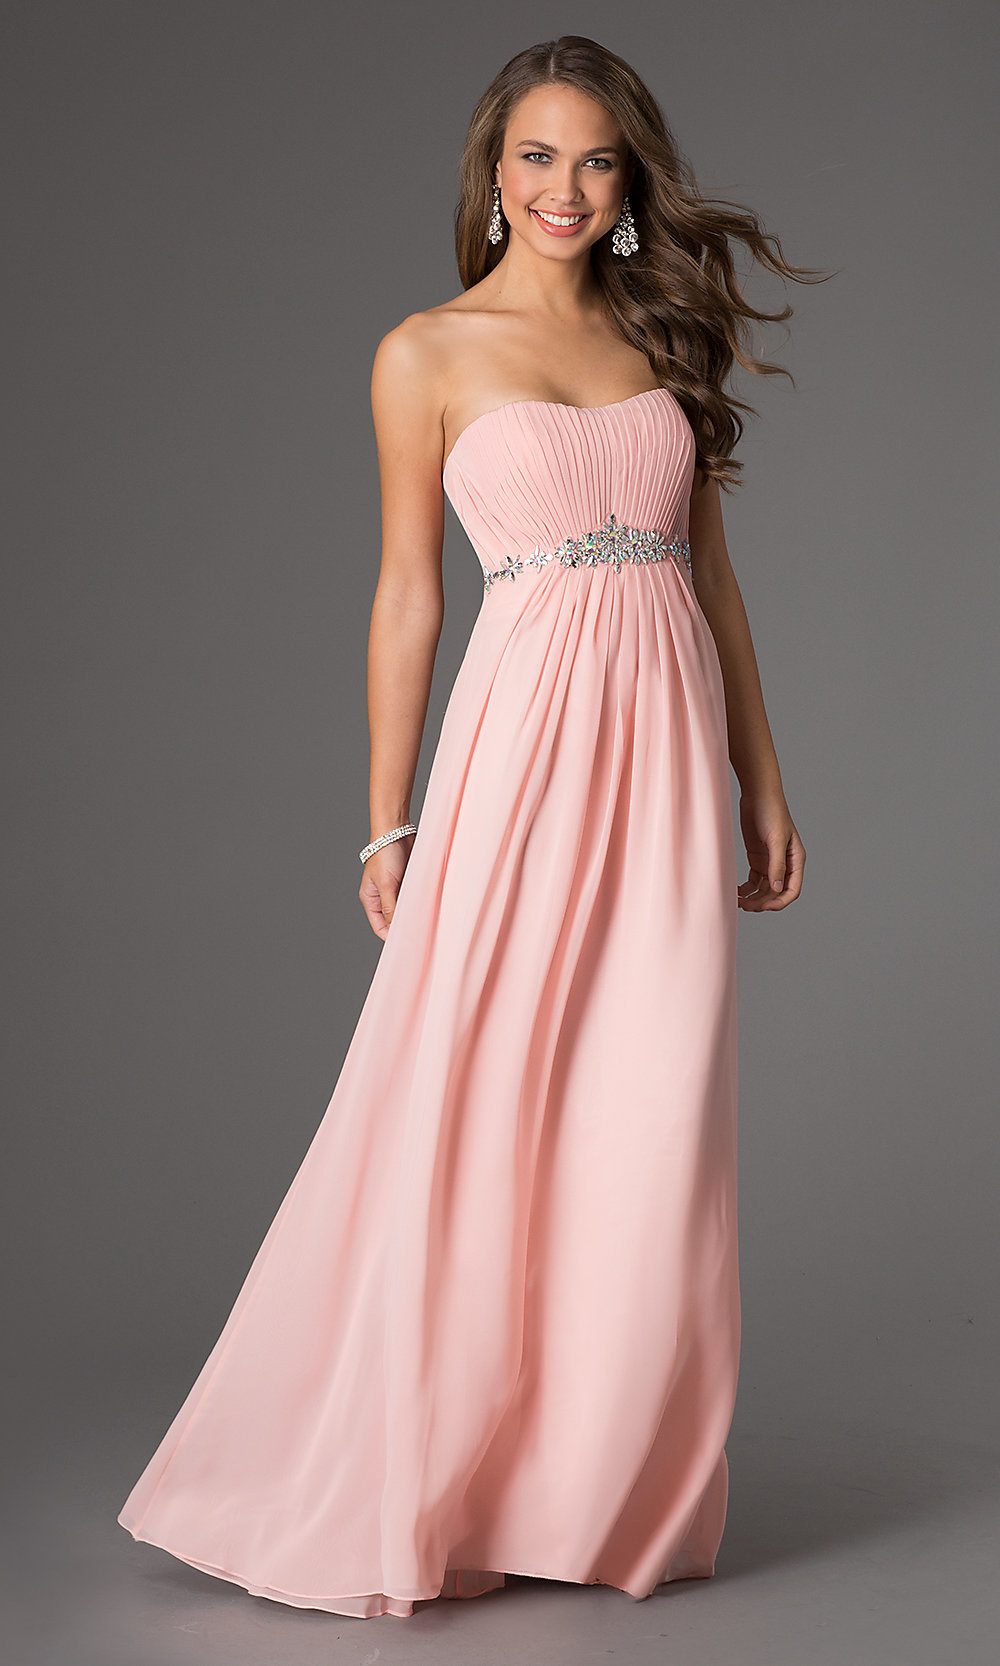 Popular Prom Dresses with PocketsBuy Cheap Prom Dresses - oukas.info